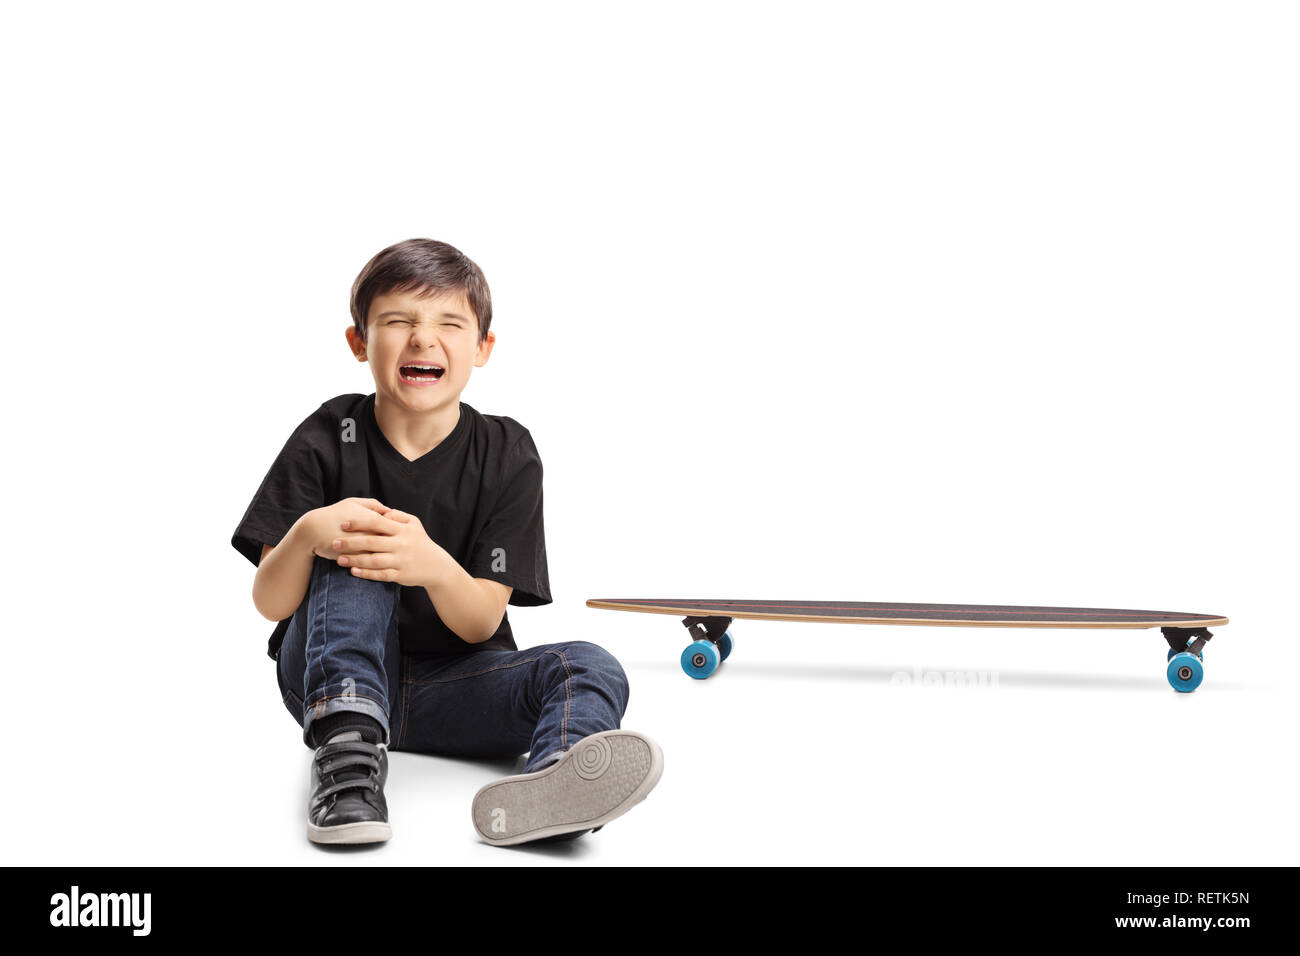 A boy with an injured knee sitting next to a longboard isolated on white background - Stock Image